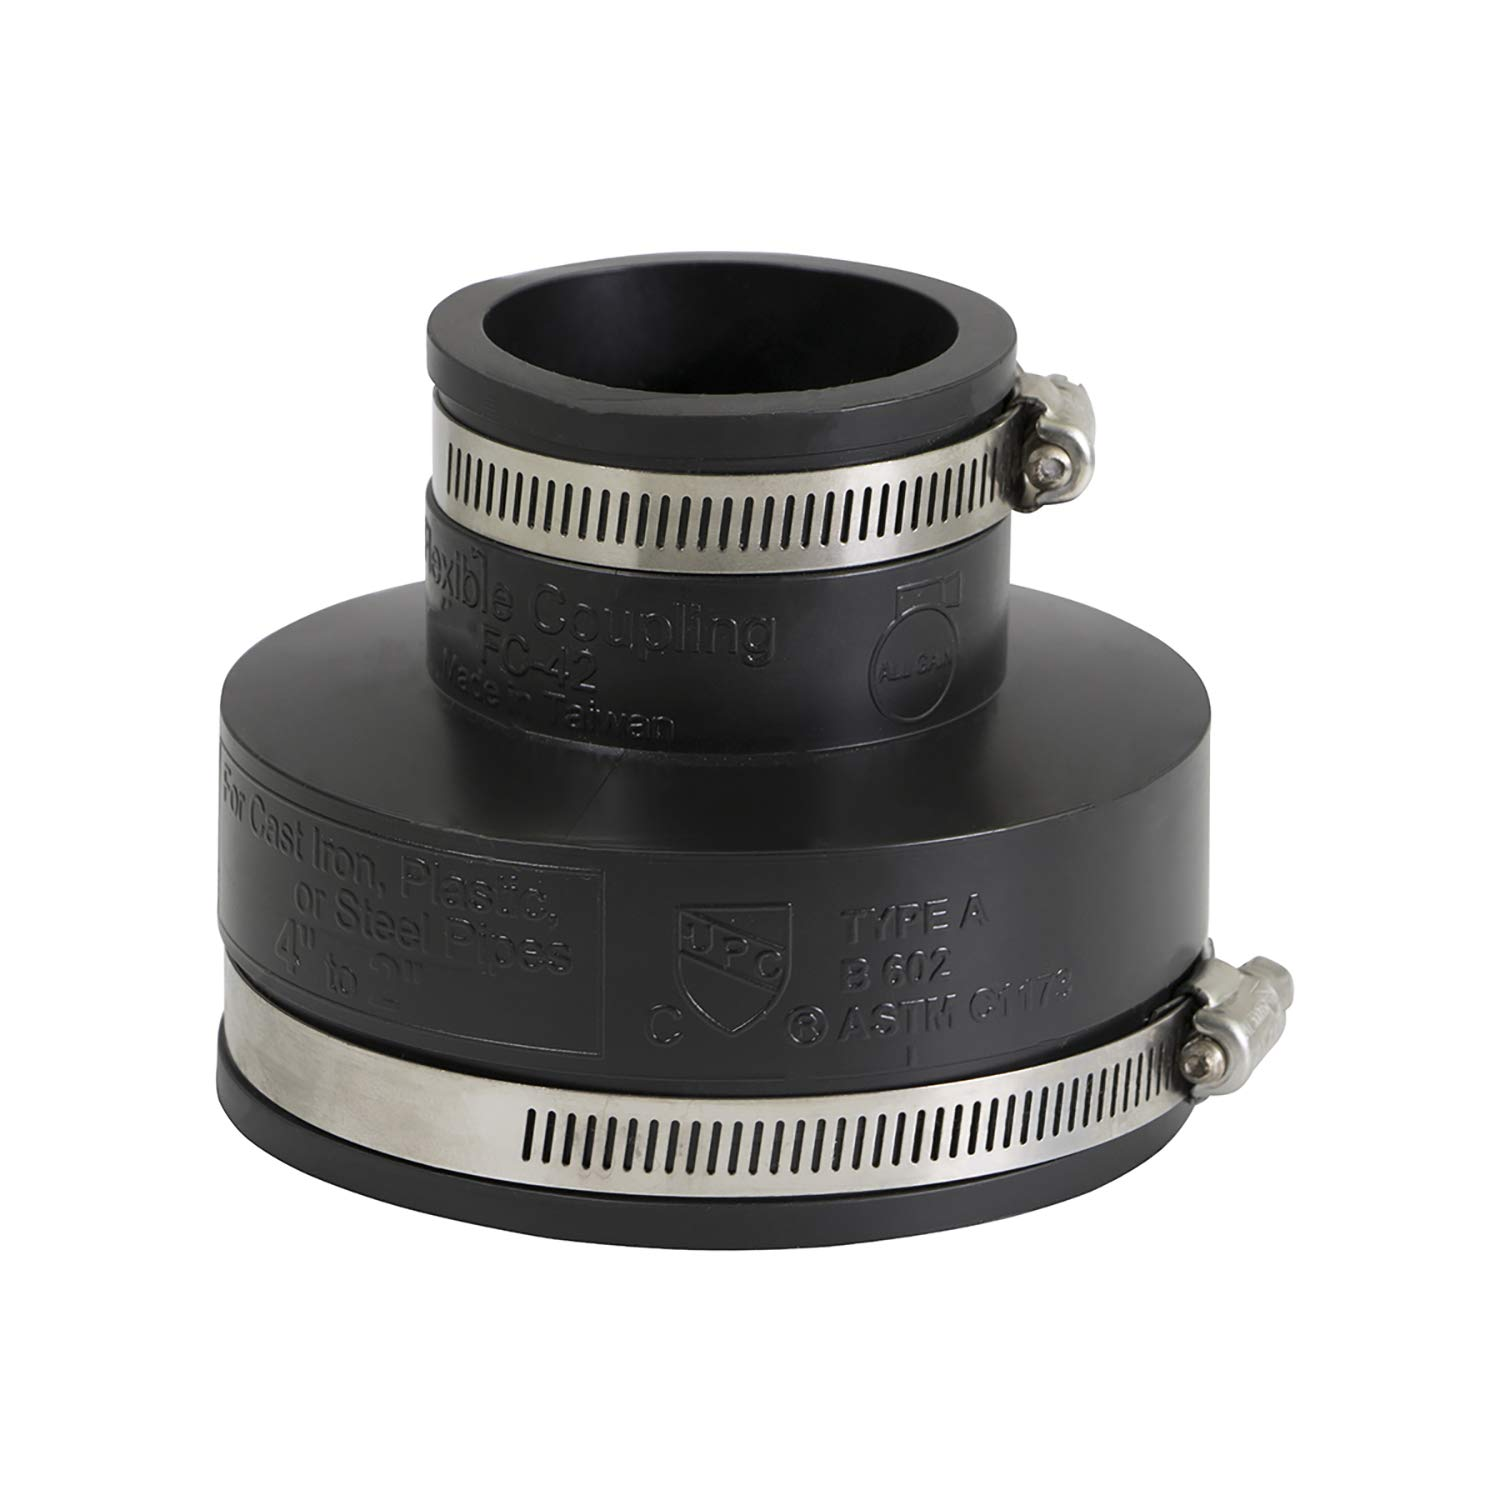 Supply Giant 6I57 Flexible Pvc Reducing Coupling with Stainless Steel Clamps, 4 x 2 Inch, Black, 4 x 2